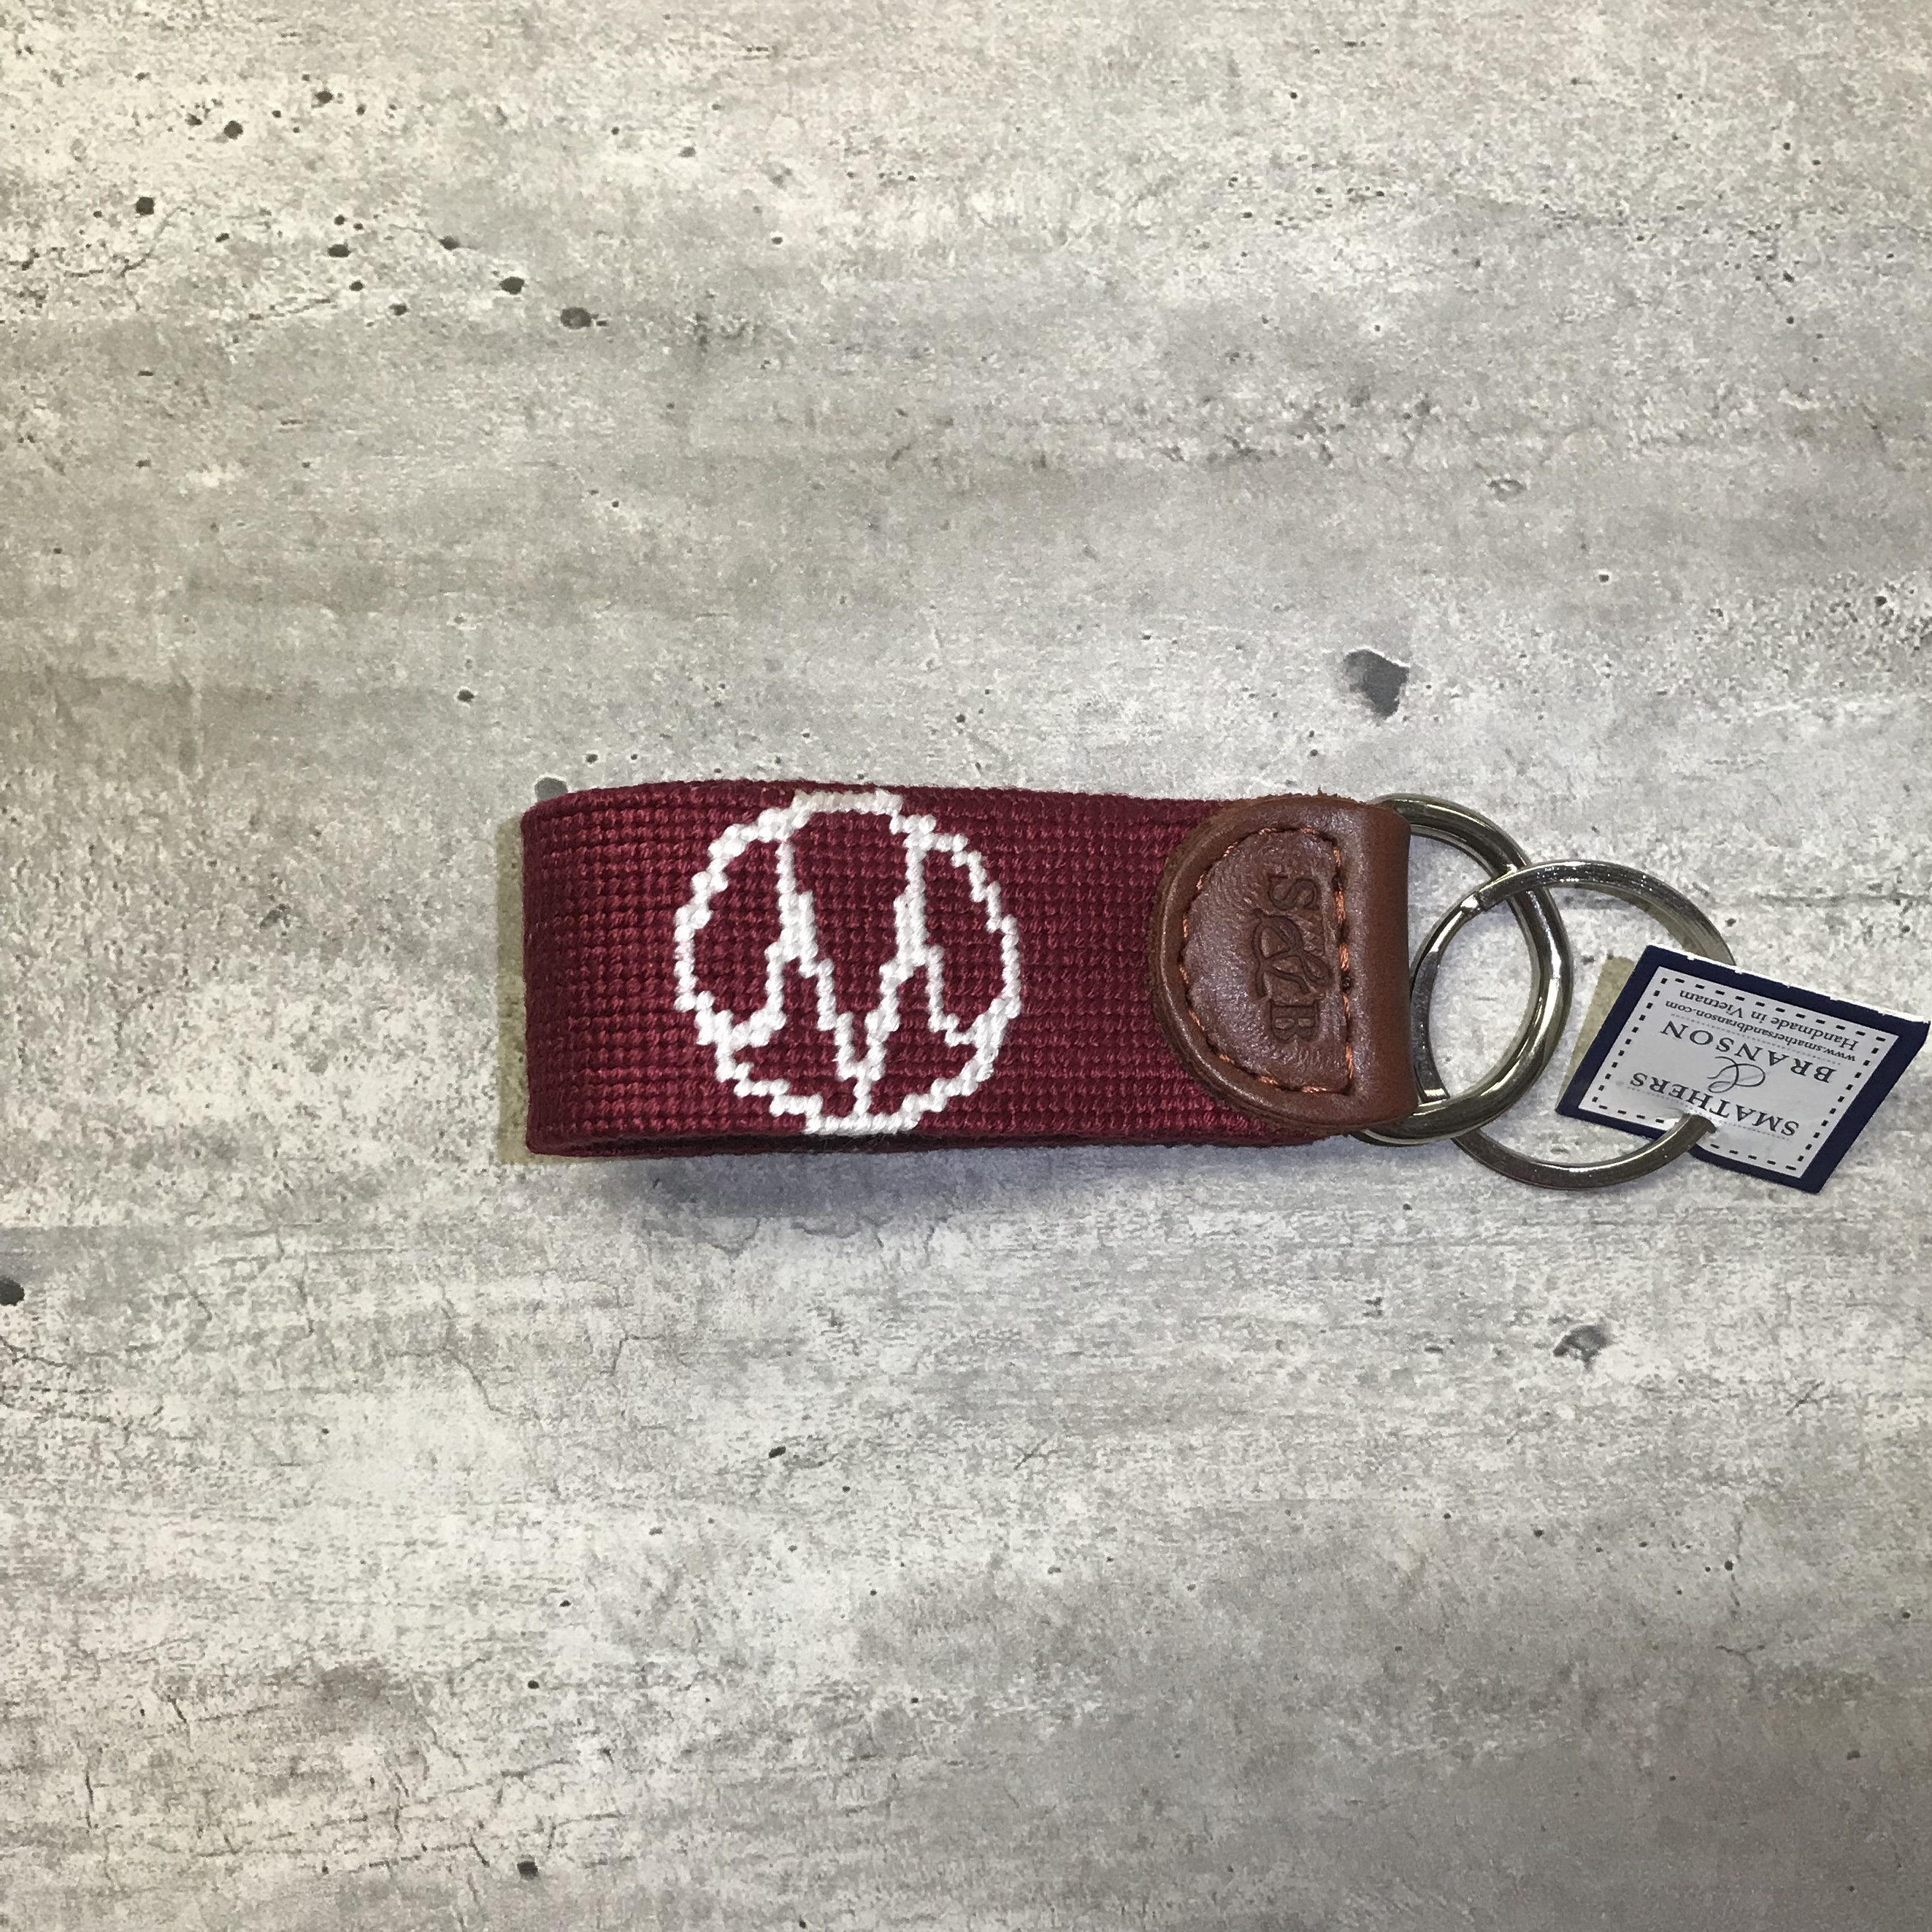 Image for the Smathers and Branson Needlepoint Key Fob, Back Gate M Design product